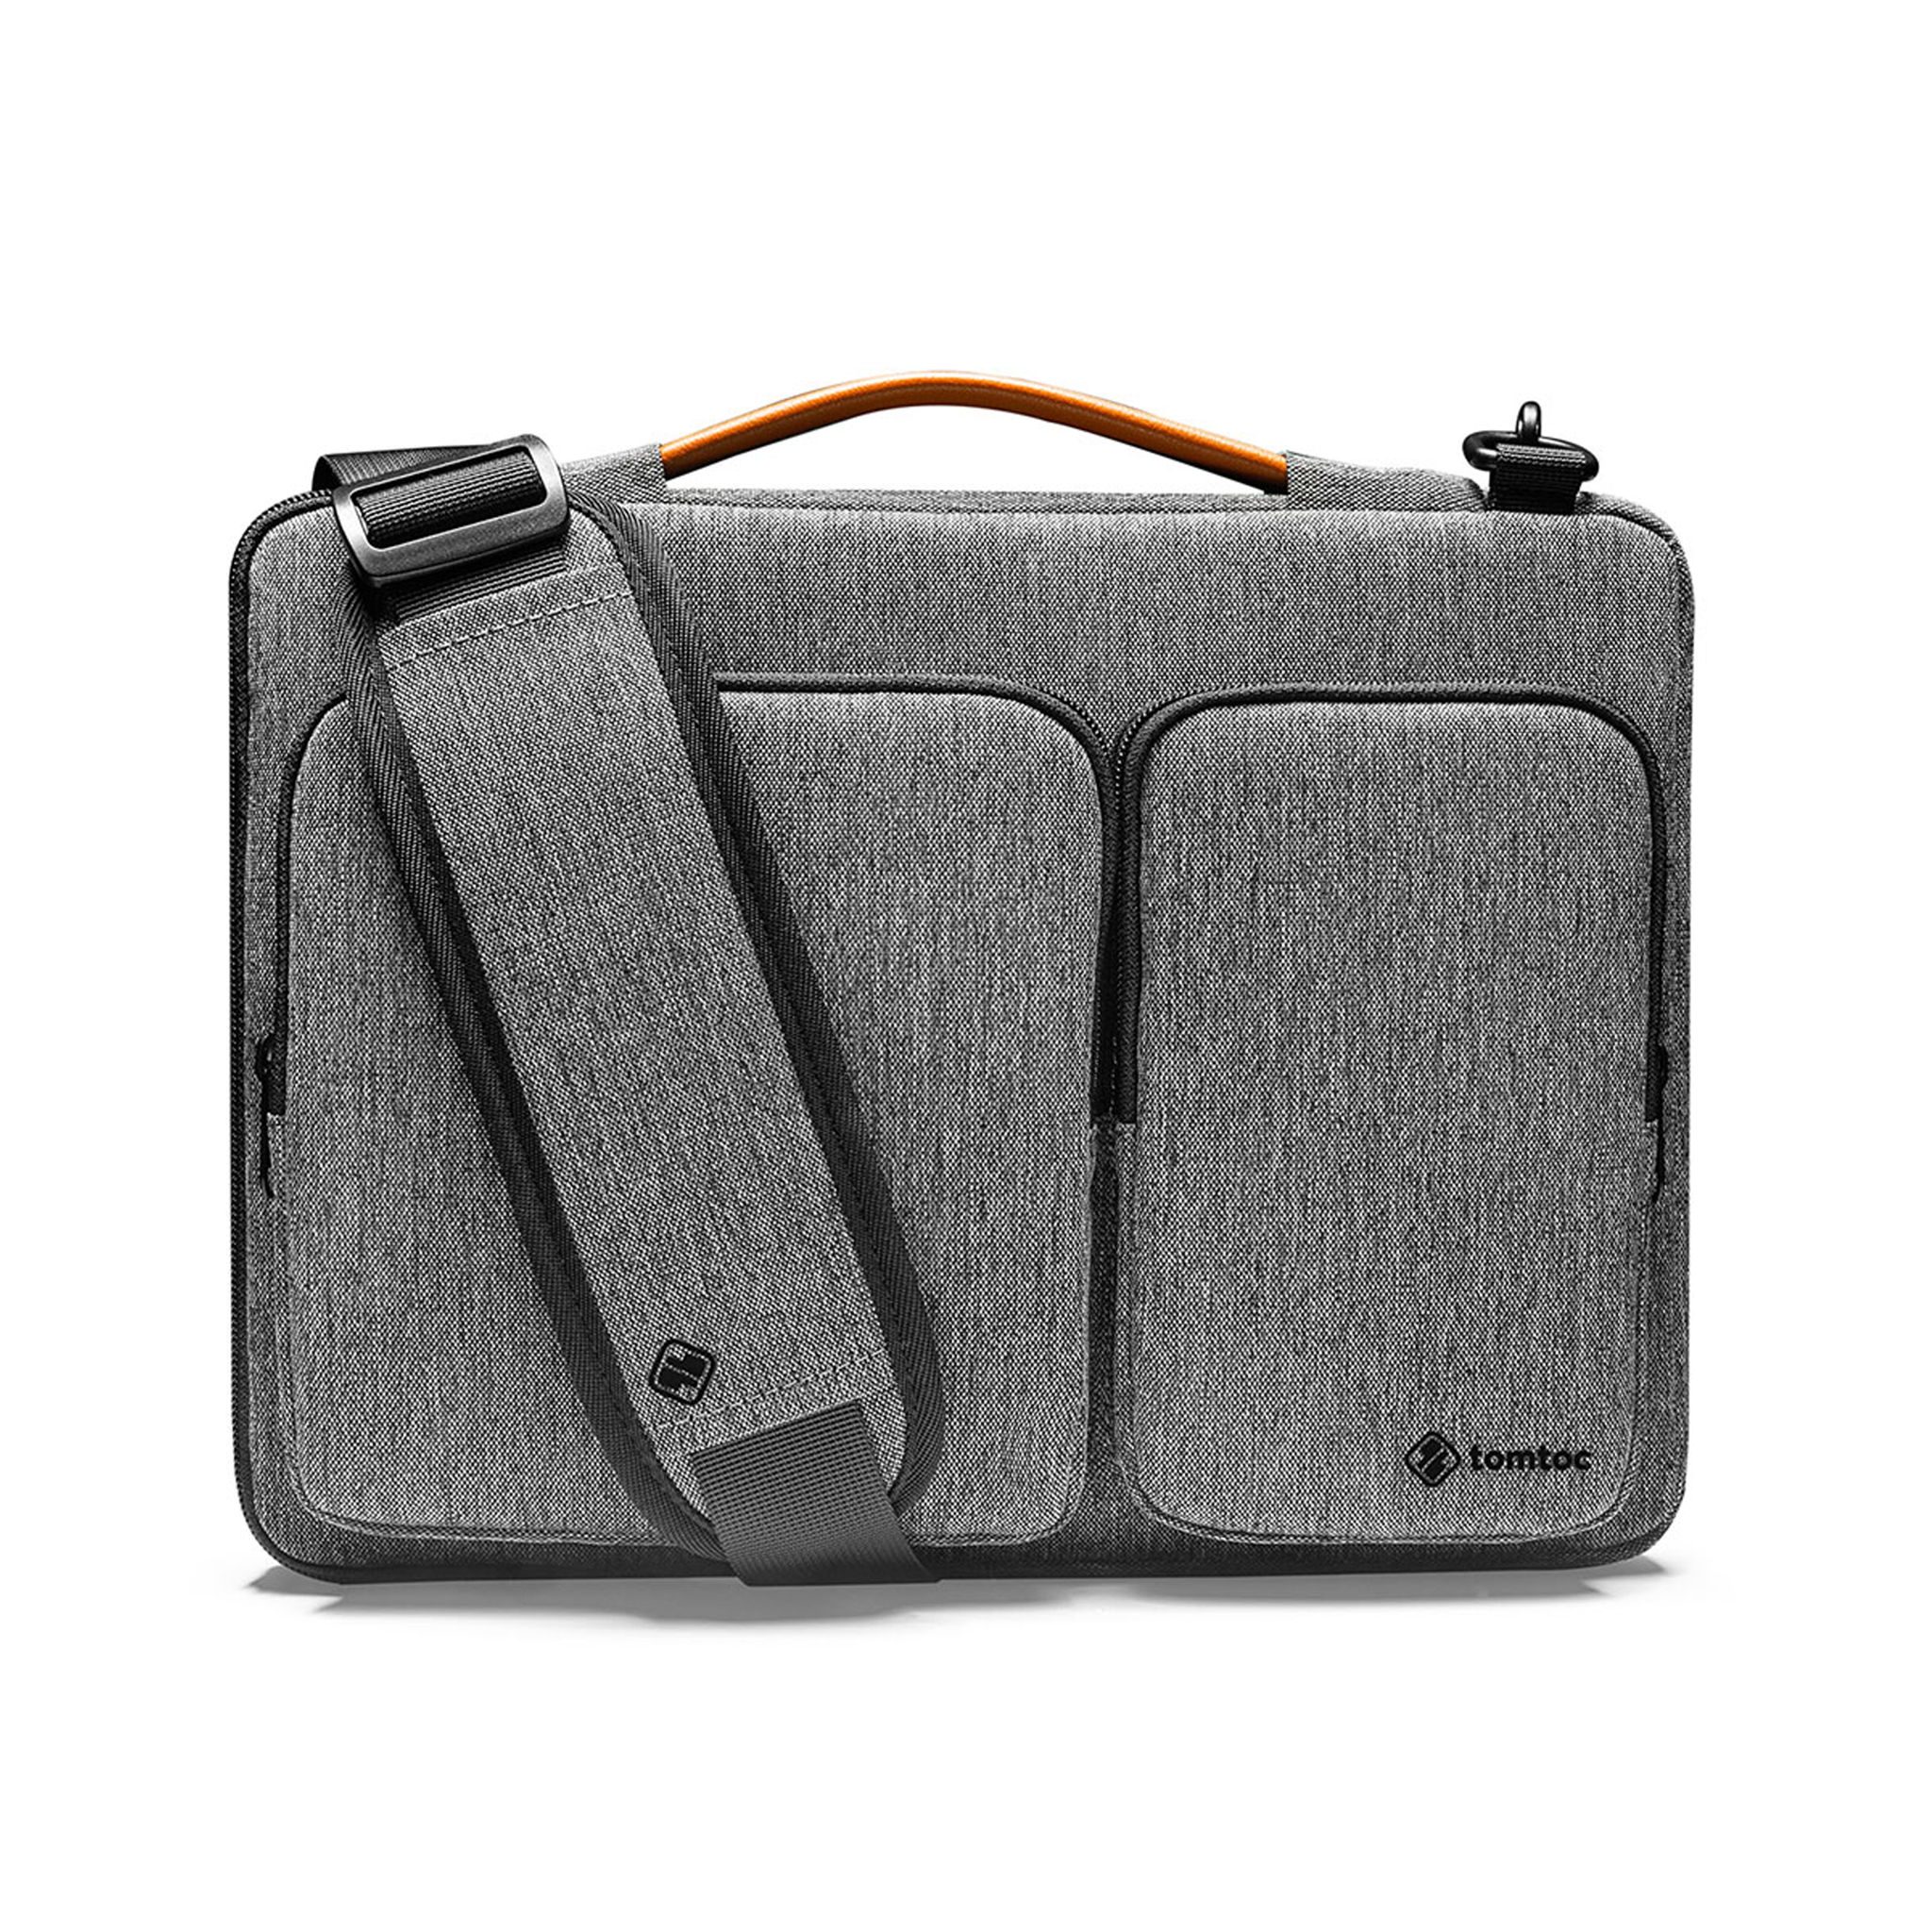 Túi Đeo Tomtoc (USA) 360* Shoulder Bags Macbook Pro 13″ New/Macbook Air 13″ 2019